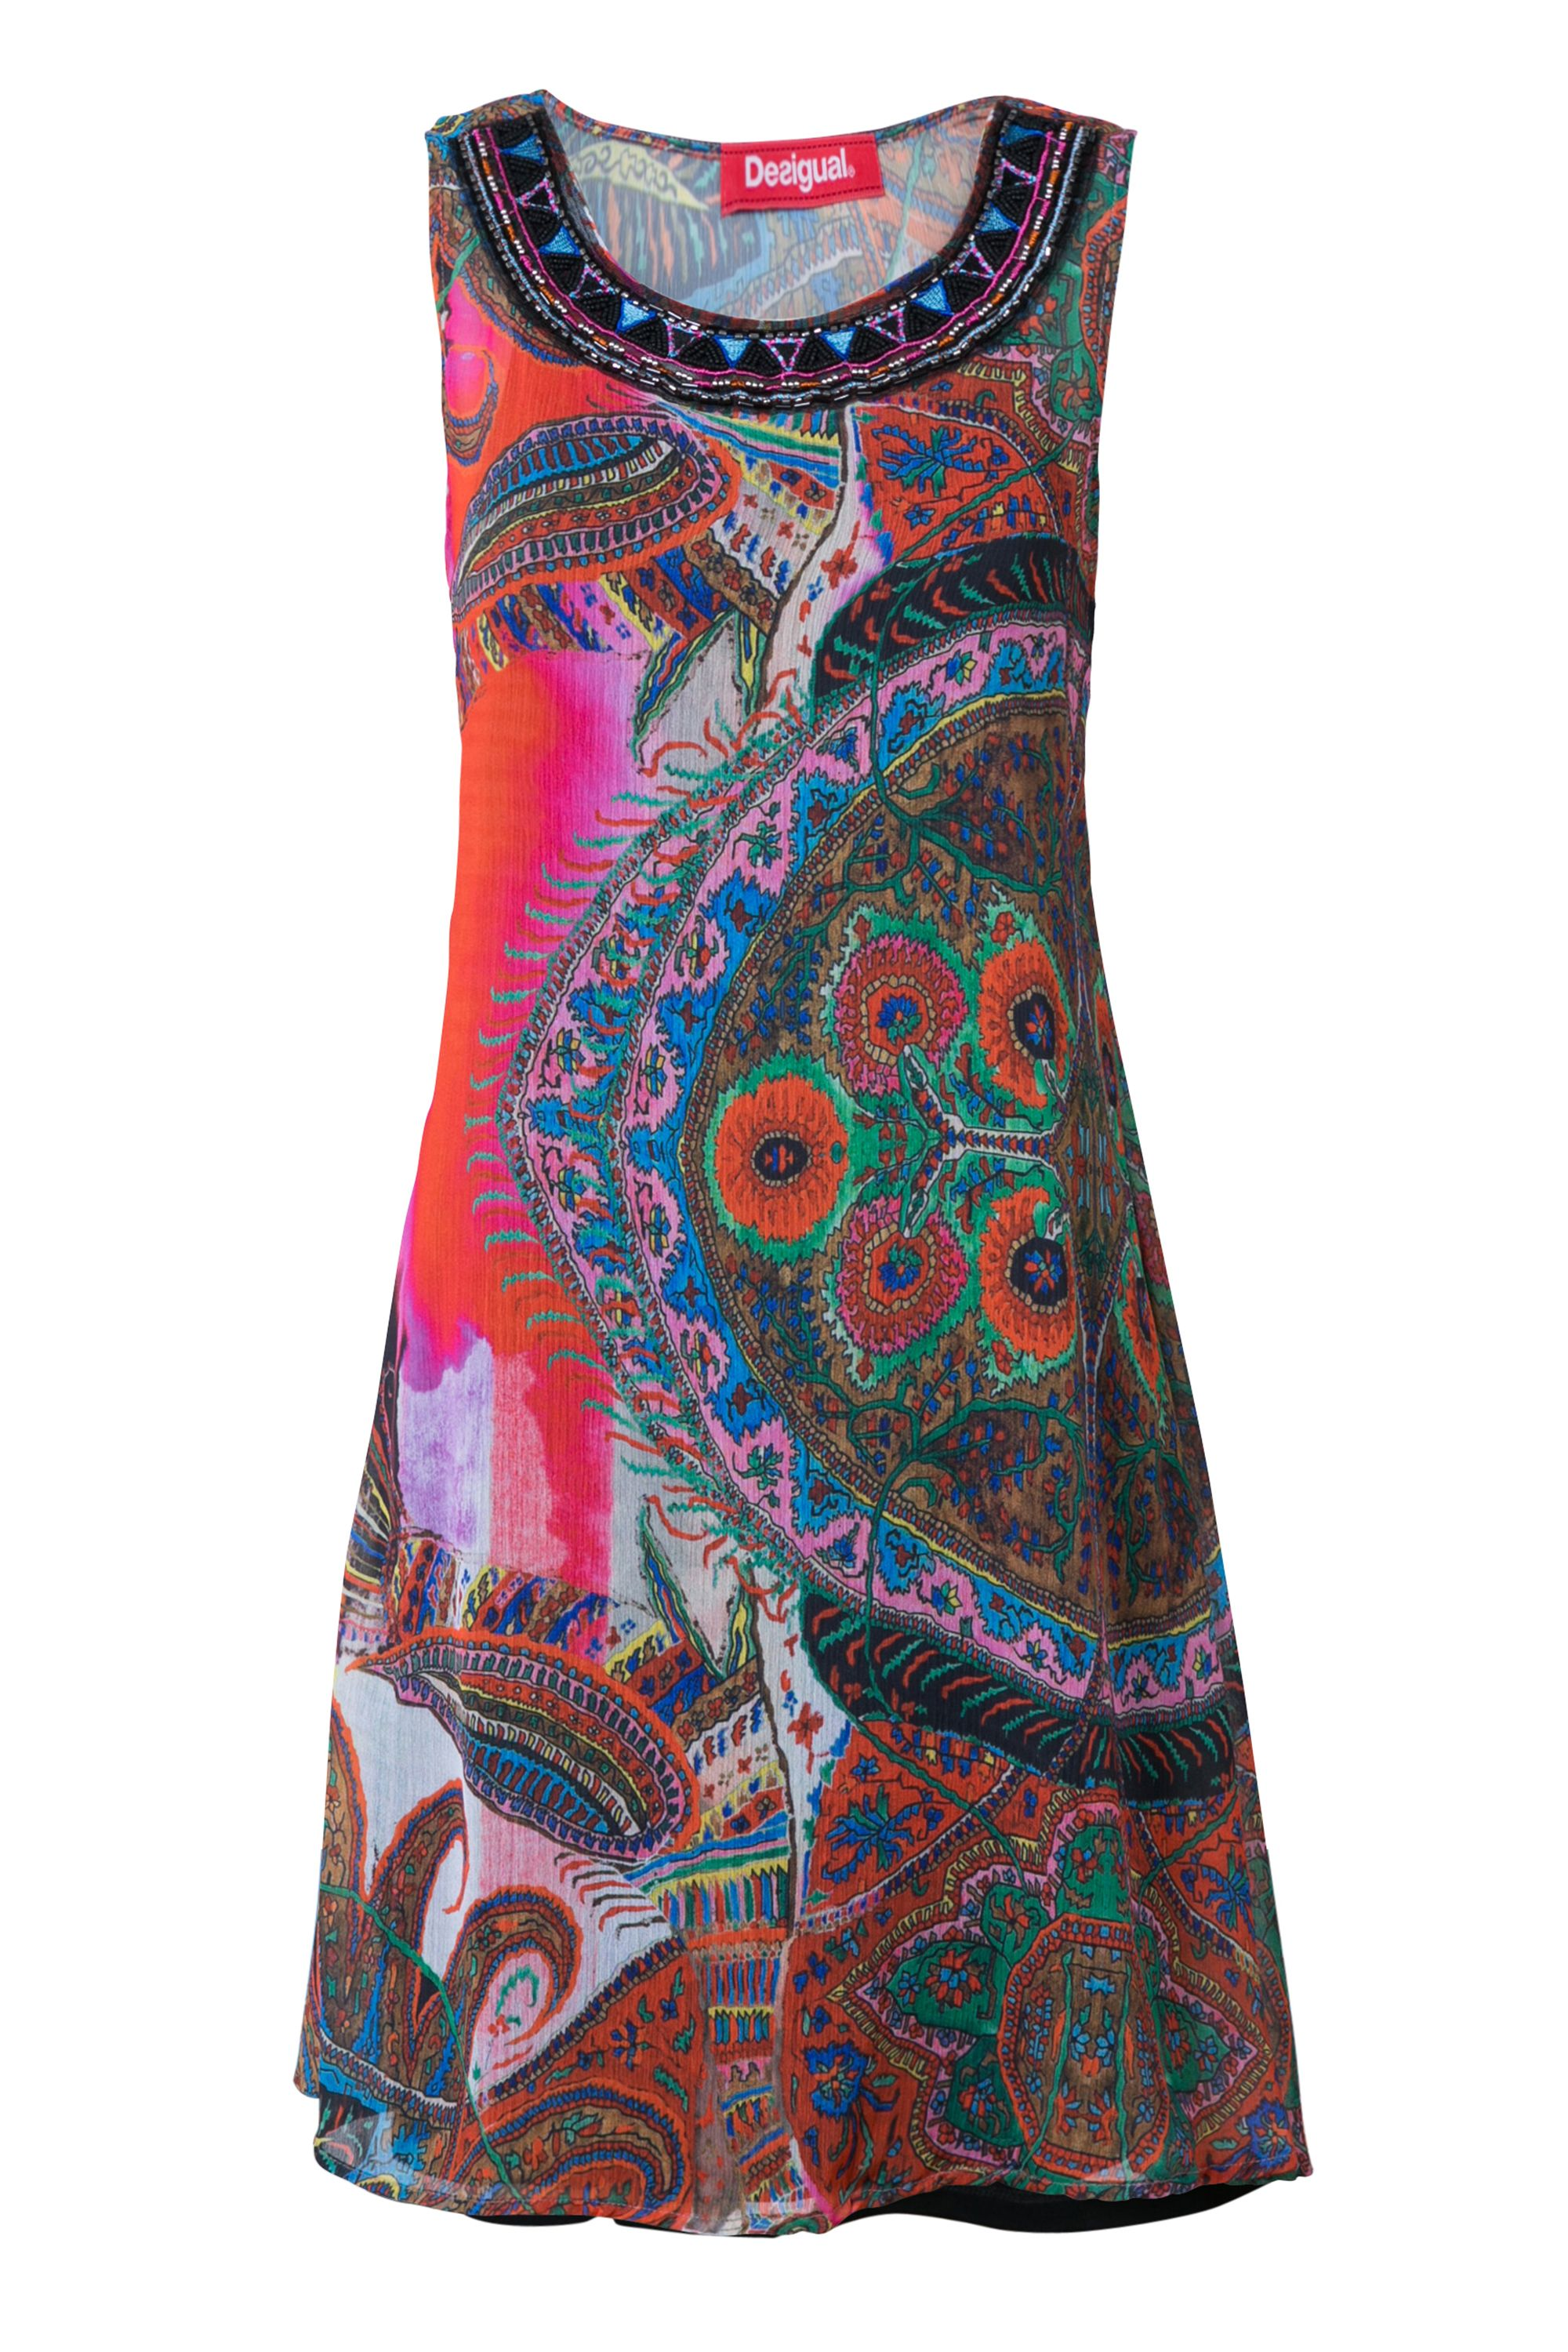 Desigual Dress Marin, Red